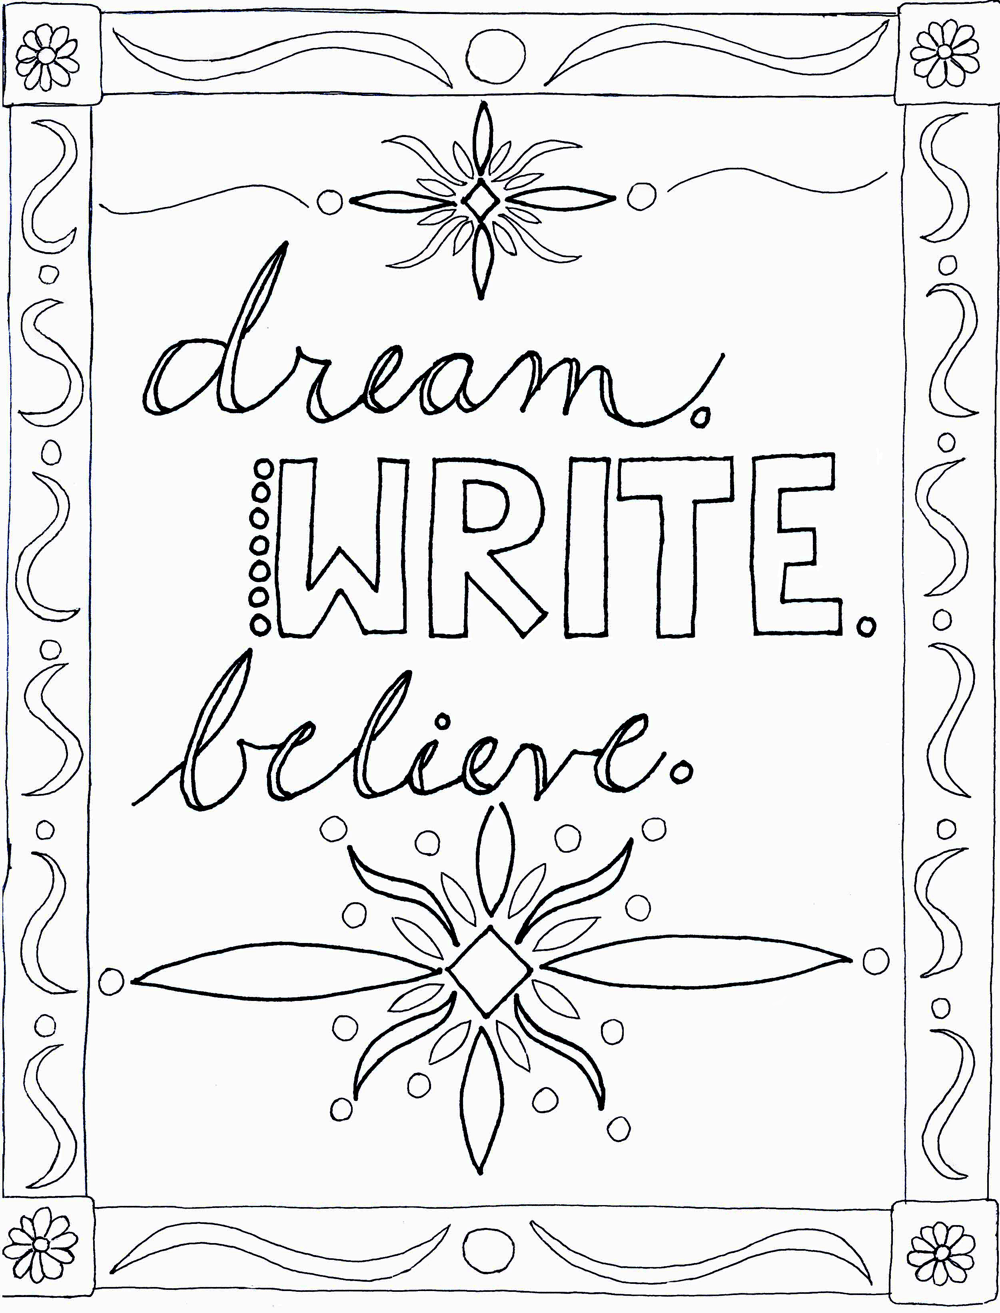 Dream, Write, Believe - image 1 - student project